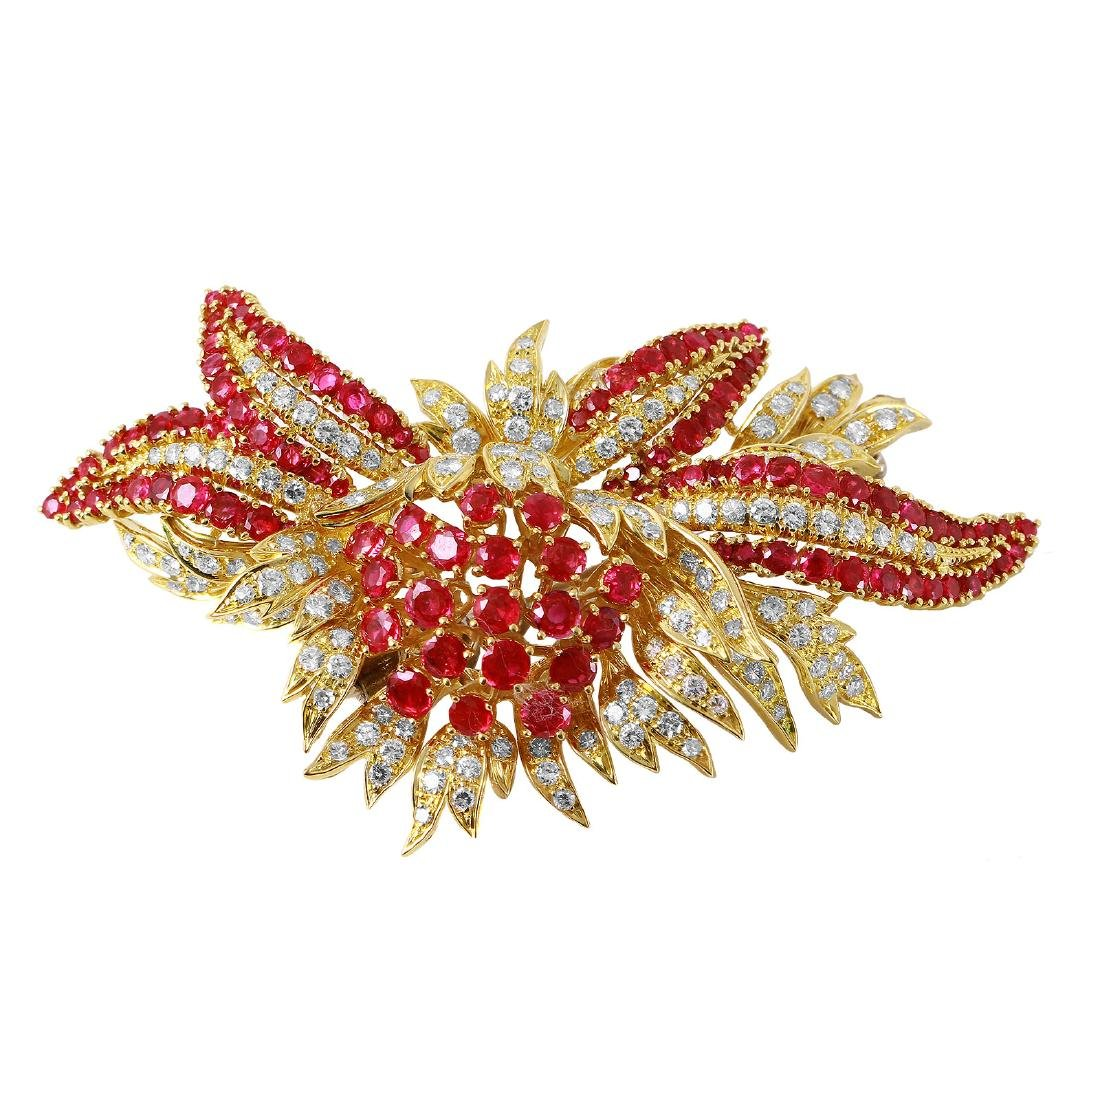 18KT Yellow Gold Ruby & Diamond Brooch